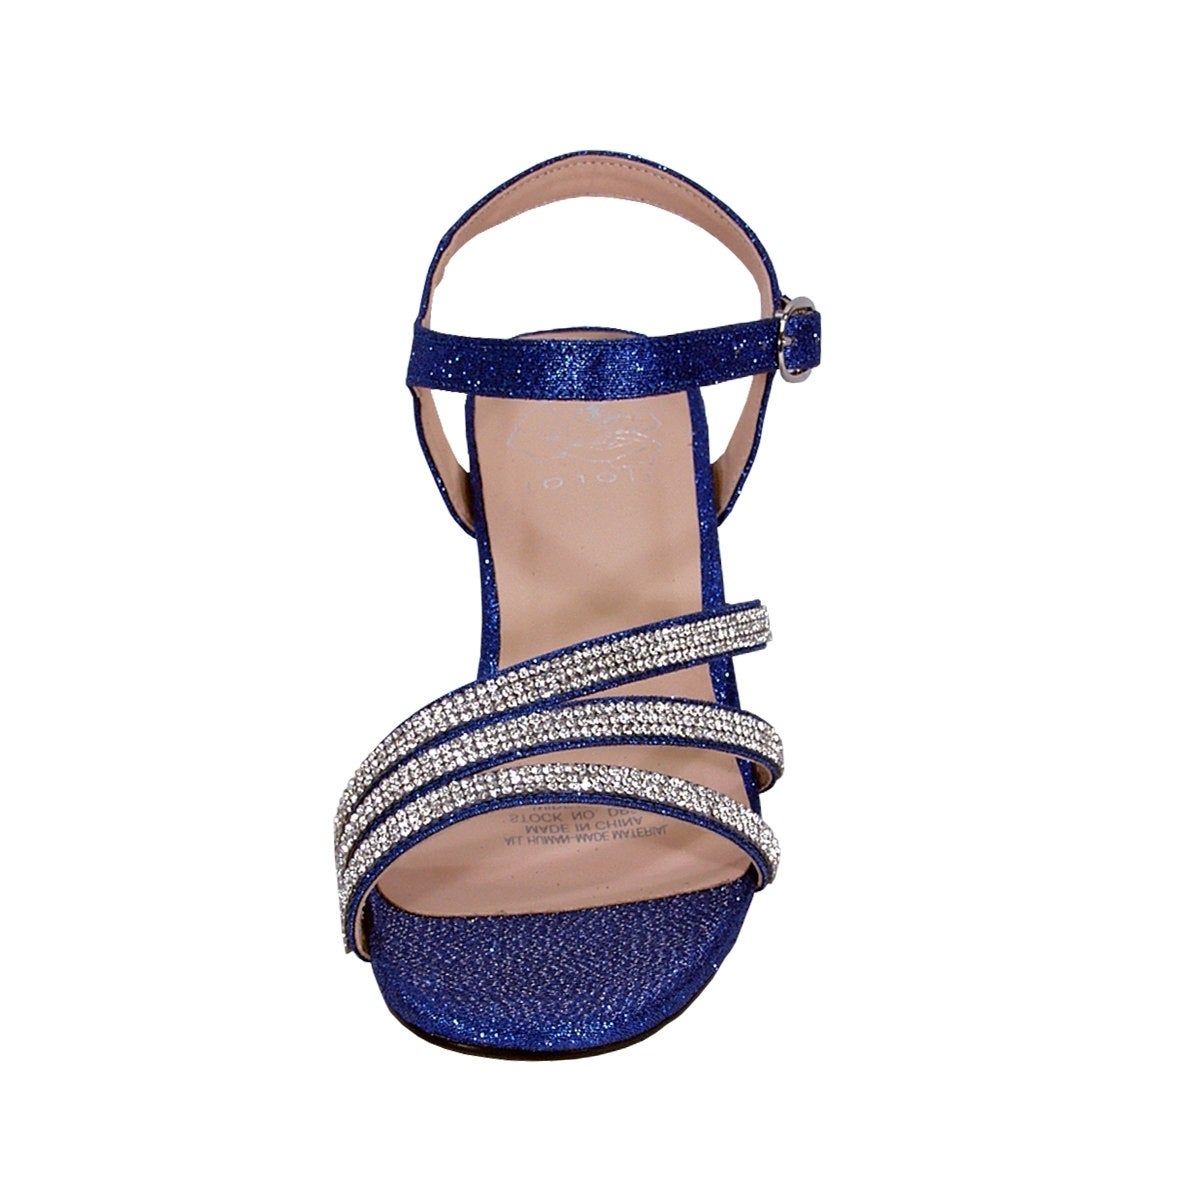 00fdc132bc50b4 Shop FLORAL Jenna Women Extra Wide Width Glittery Rhinestone Straps Sandals  - Free Shipping Today - Overstock - 20005084